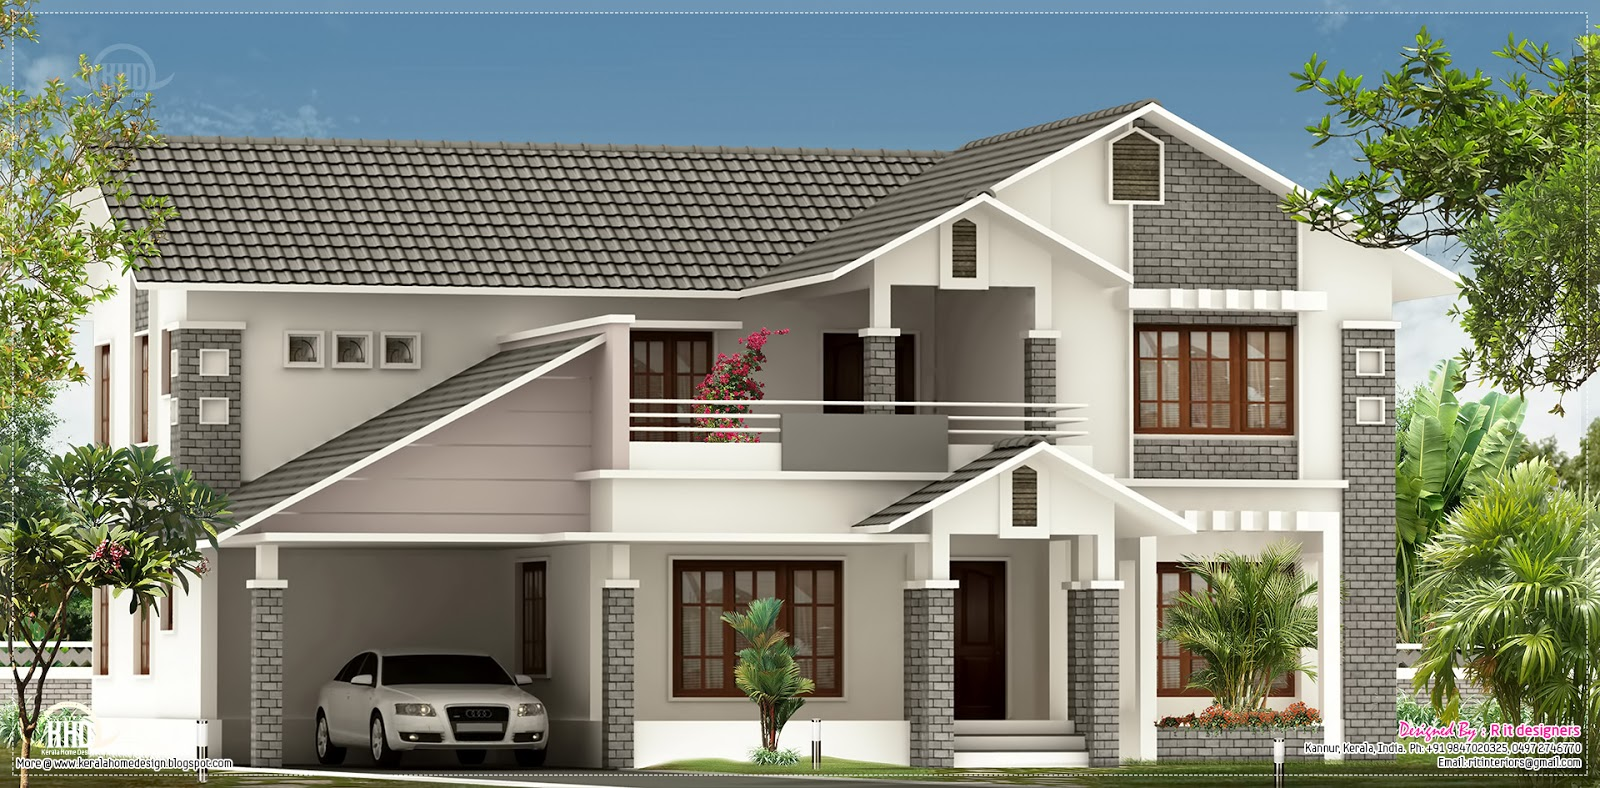 New Home Design Home Design R on home furniture, home layout, home builders, home blueprints, home painting, home renovation, home drawing, home color schemes, home tiny house, home building, home plan, home exteriors, home row, home interior, home wallpaper, home front, home decor, home style, home ideas, home symbol,